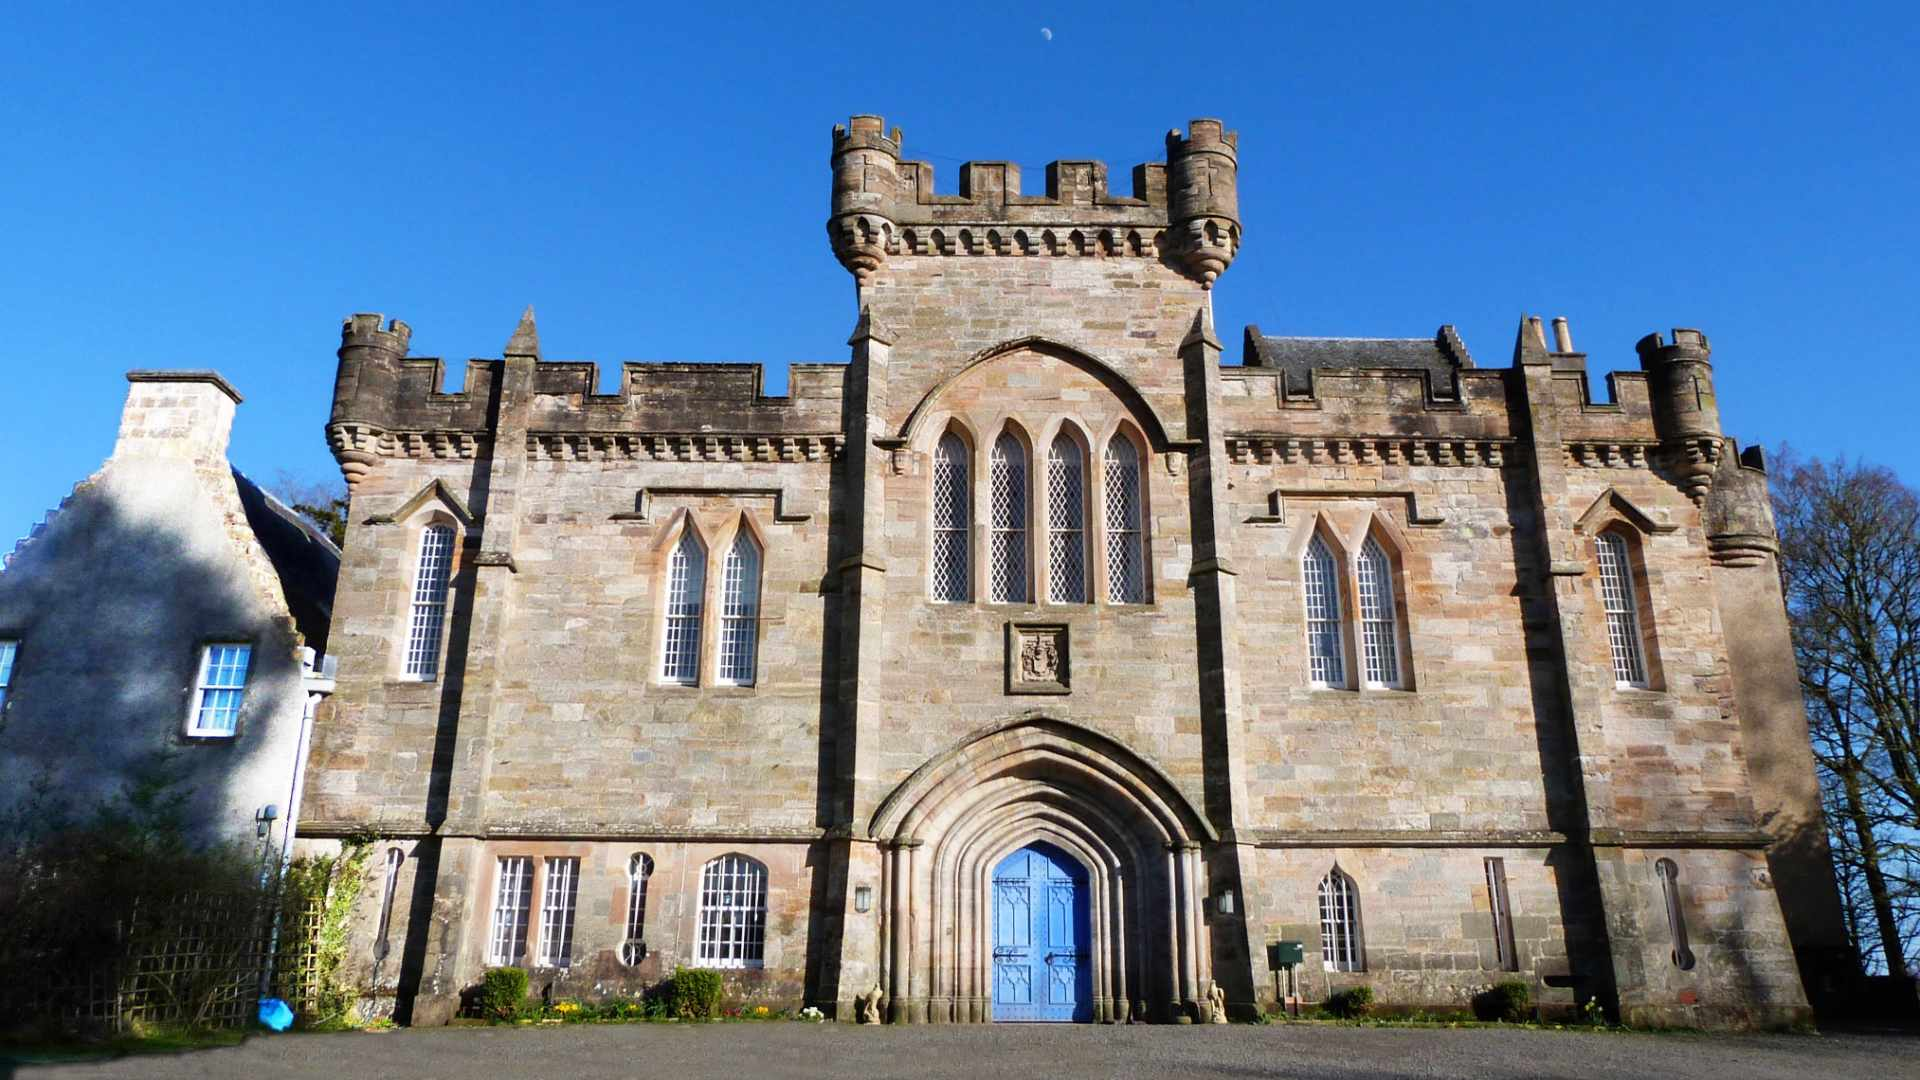 castle with history in Kilmarnock perfect for an Outlander holiday in Scotland